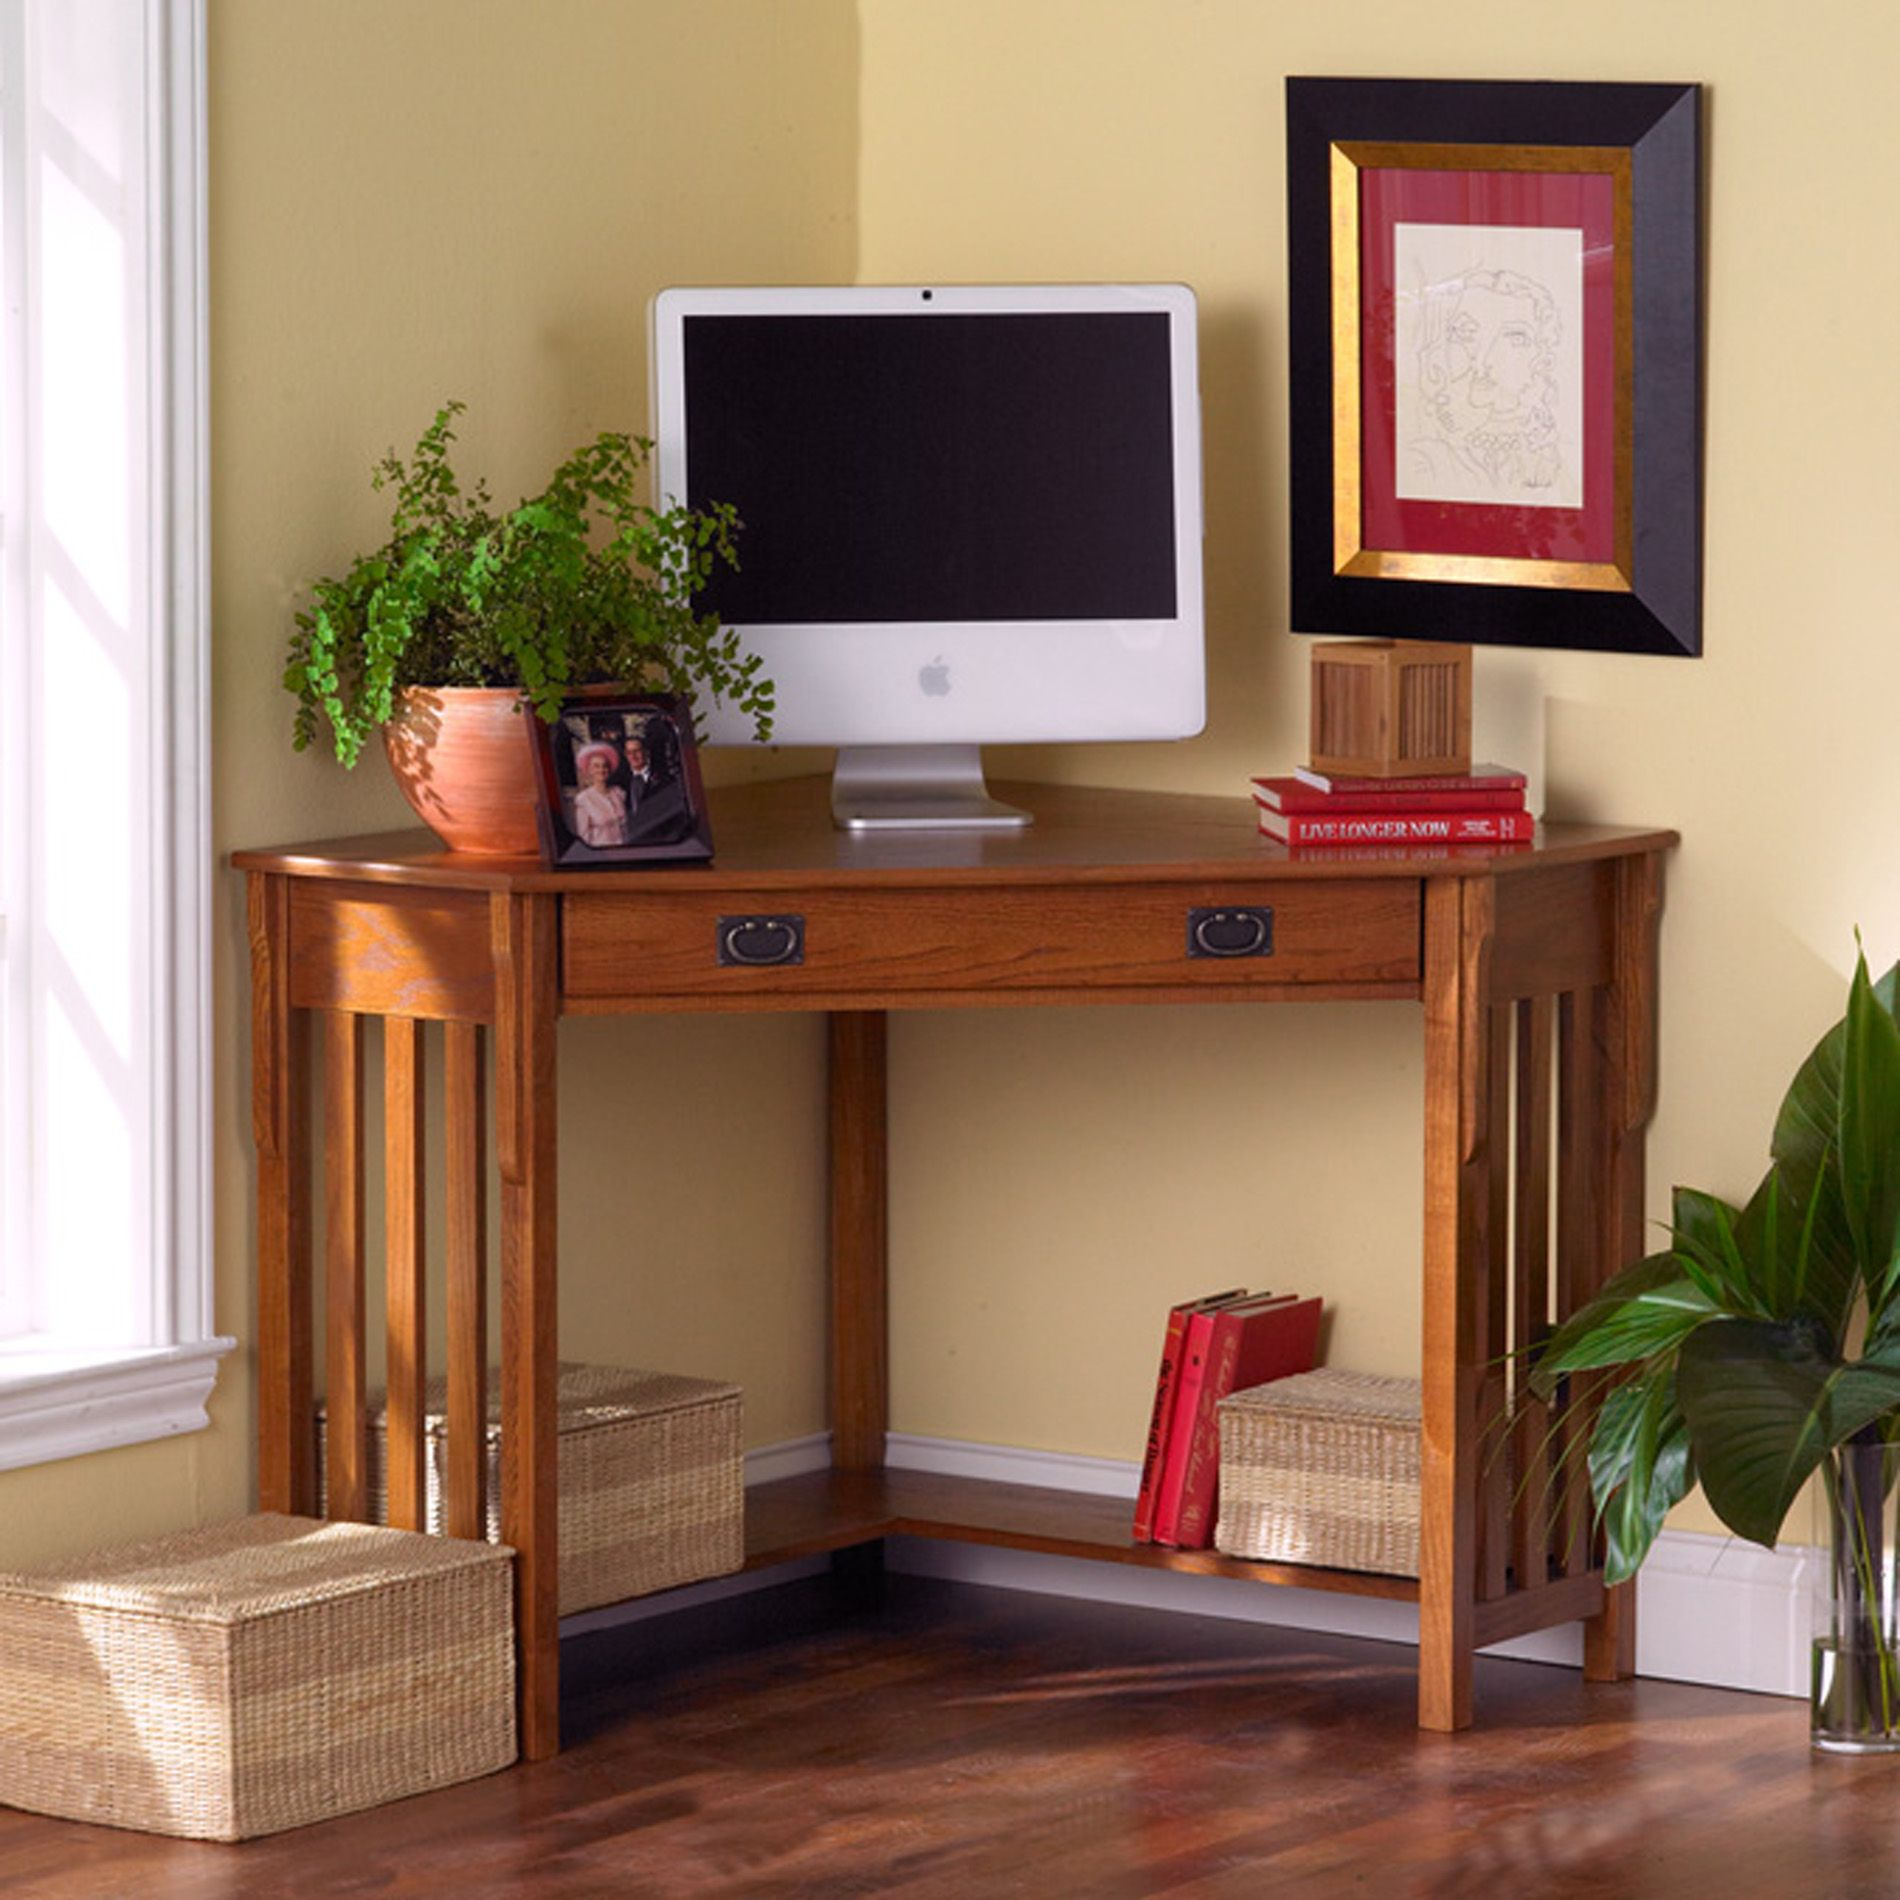 Small Desk For Bedroom Computer Small Office Desk 6 Inspiration Gallery From Furniture For Small